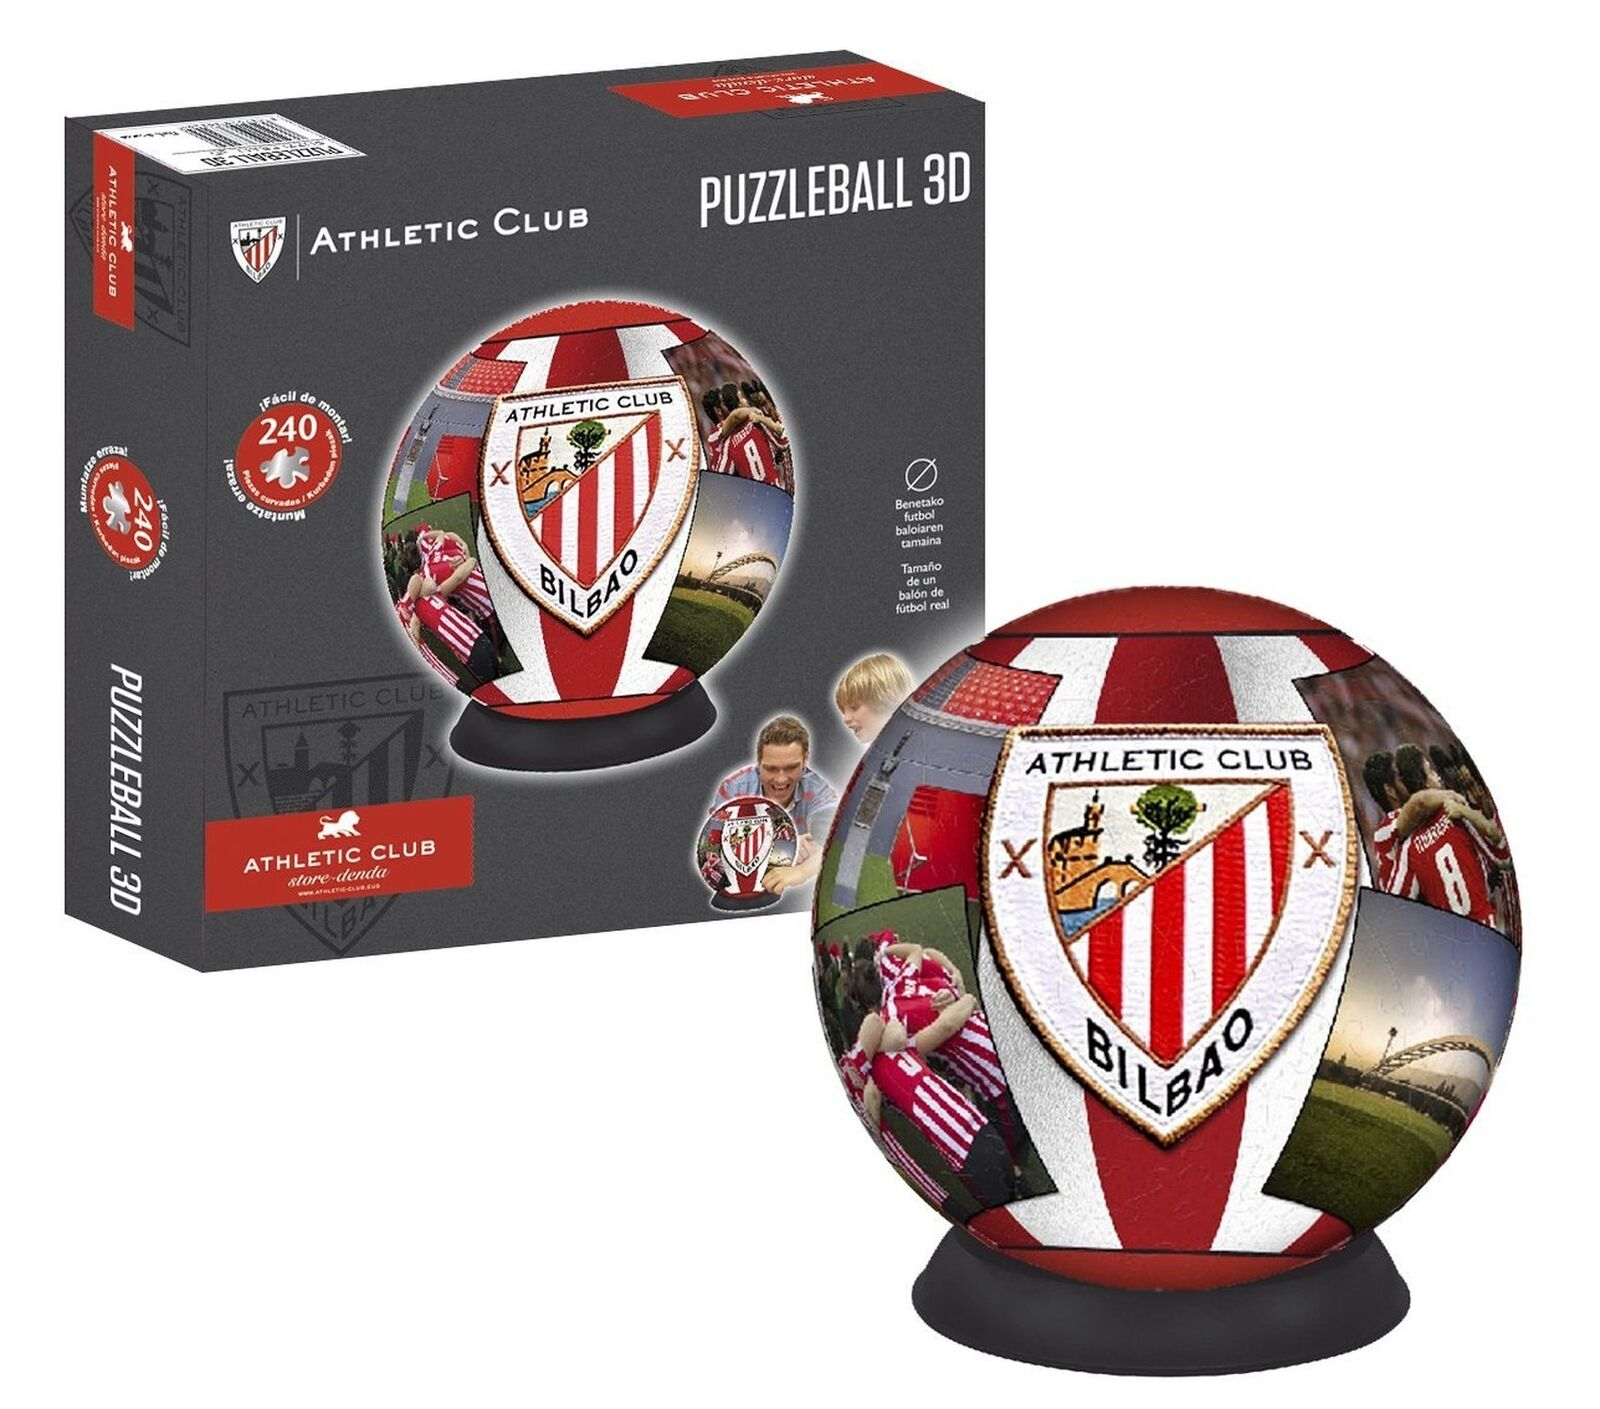 Athletic Club Puzzle Ball 2 ° 2 ° 2 ° Edition 2b6816